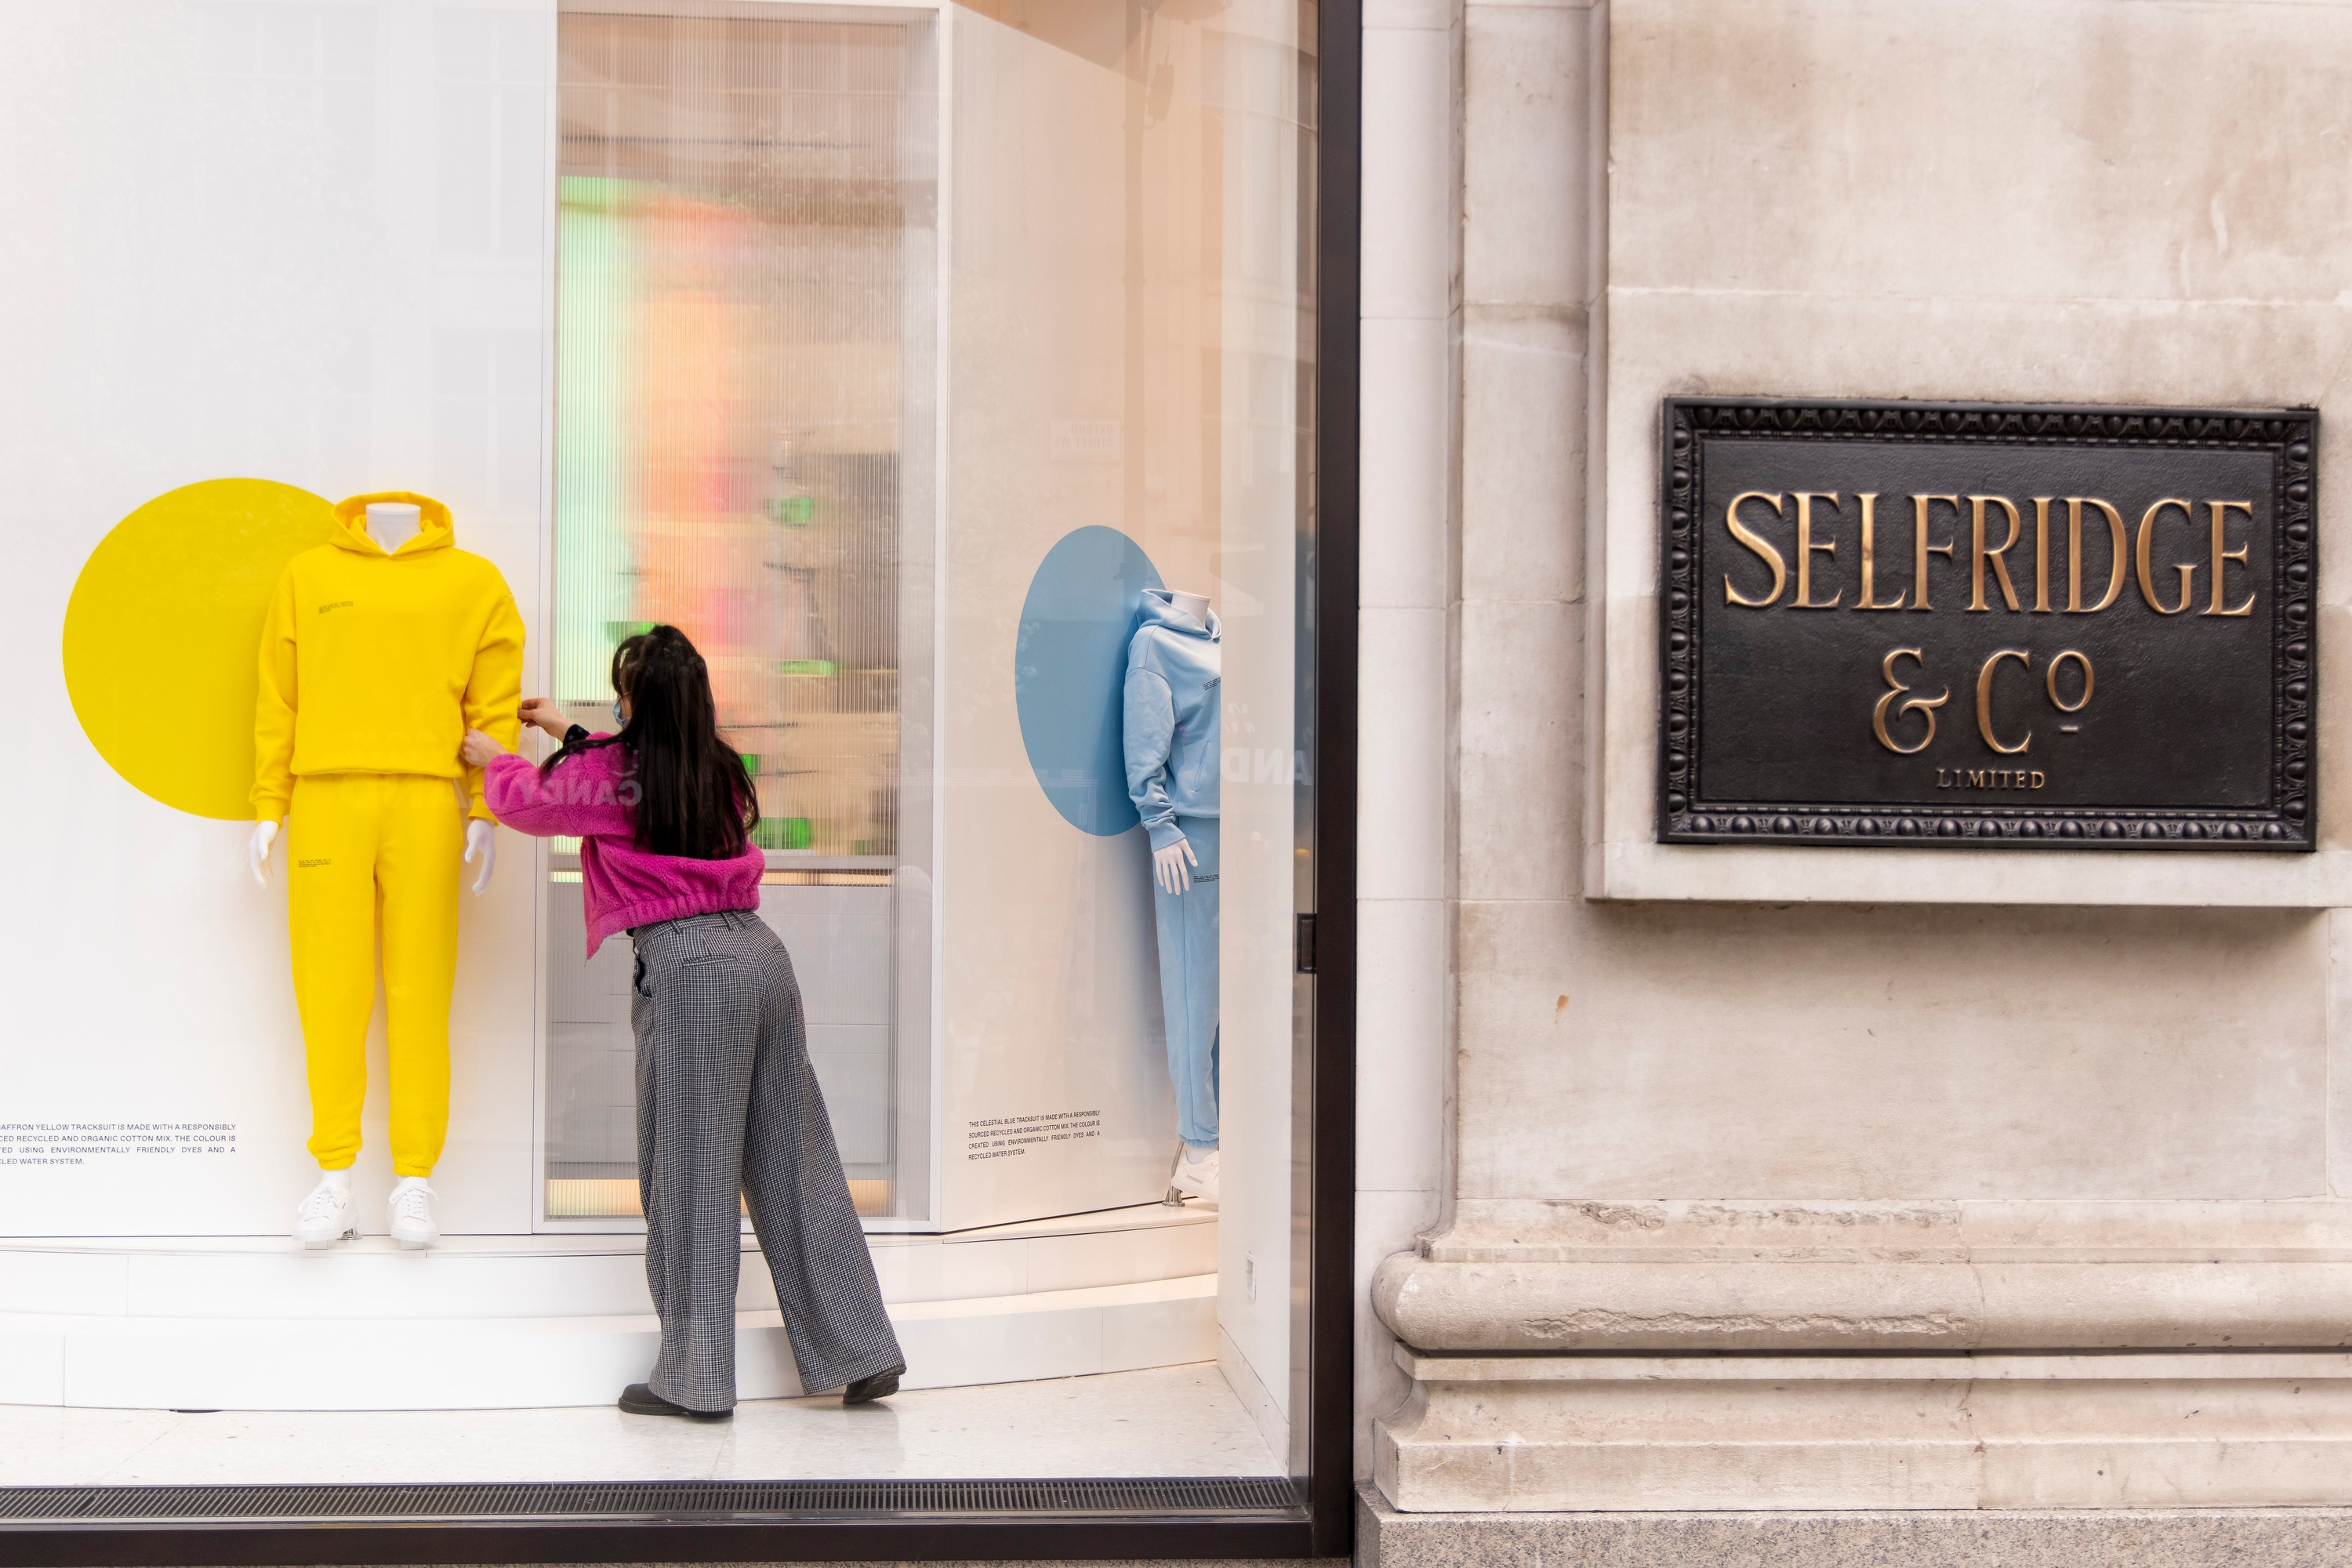 Selfridges unveils its new windows, inspired by the pleasure and optimism found in nature, ahead of store reopening on April 12.